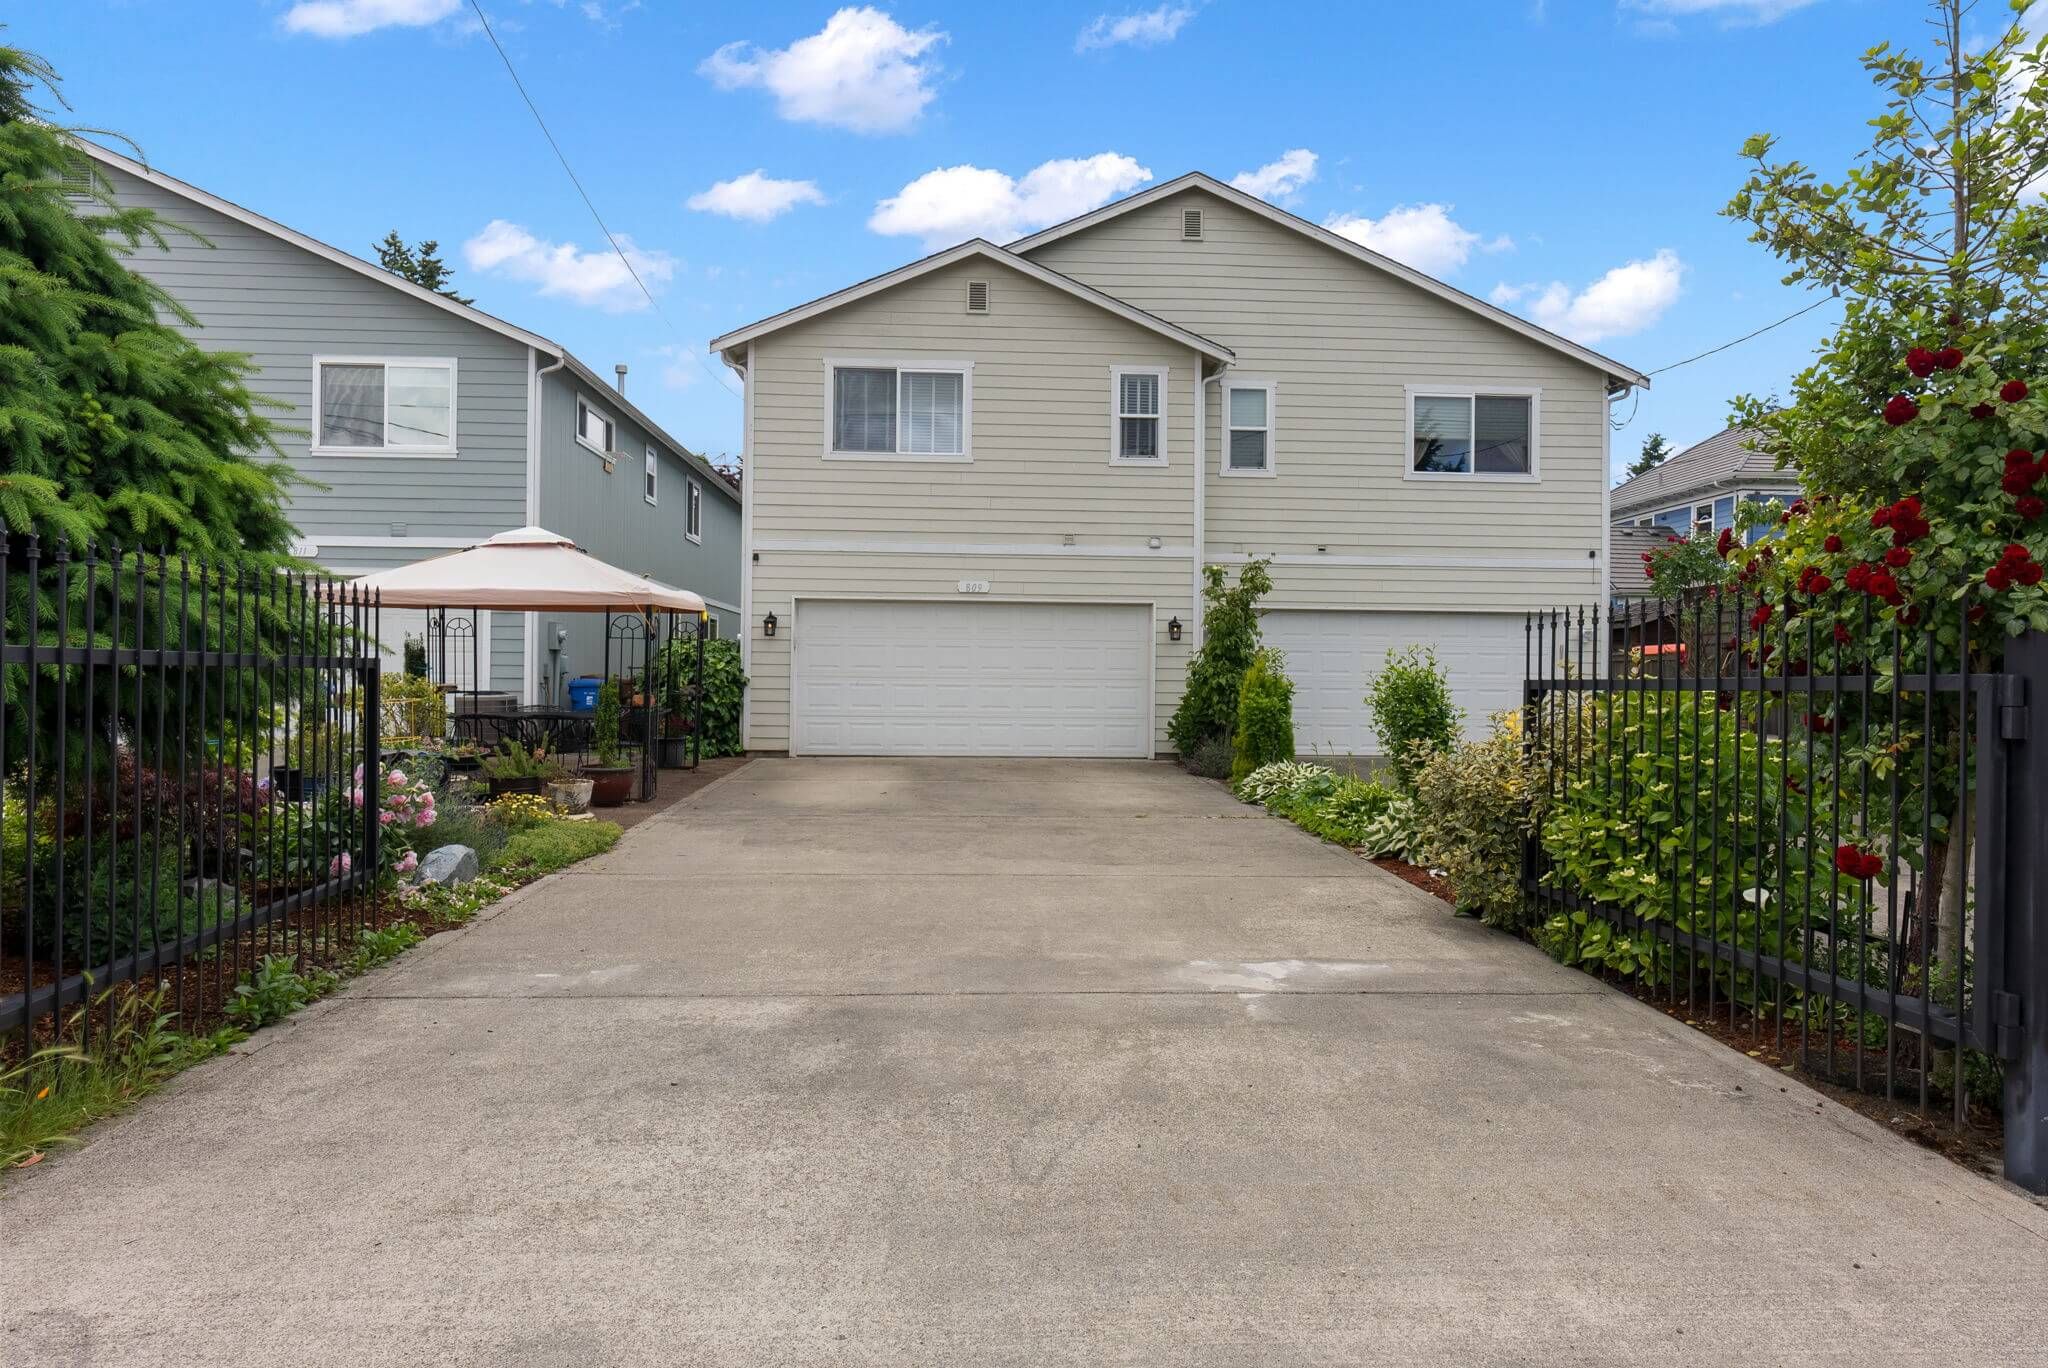 Attached two car garage and gated driveway for additional parking